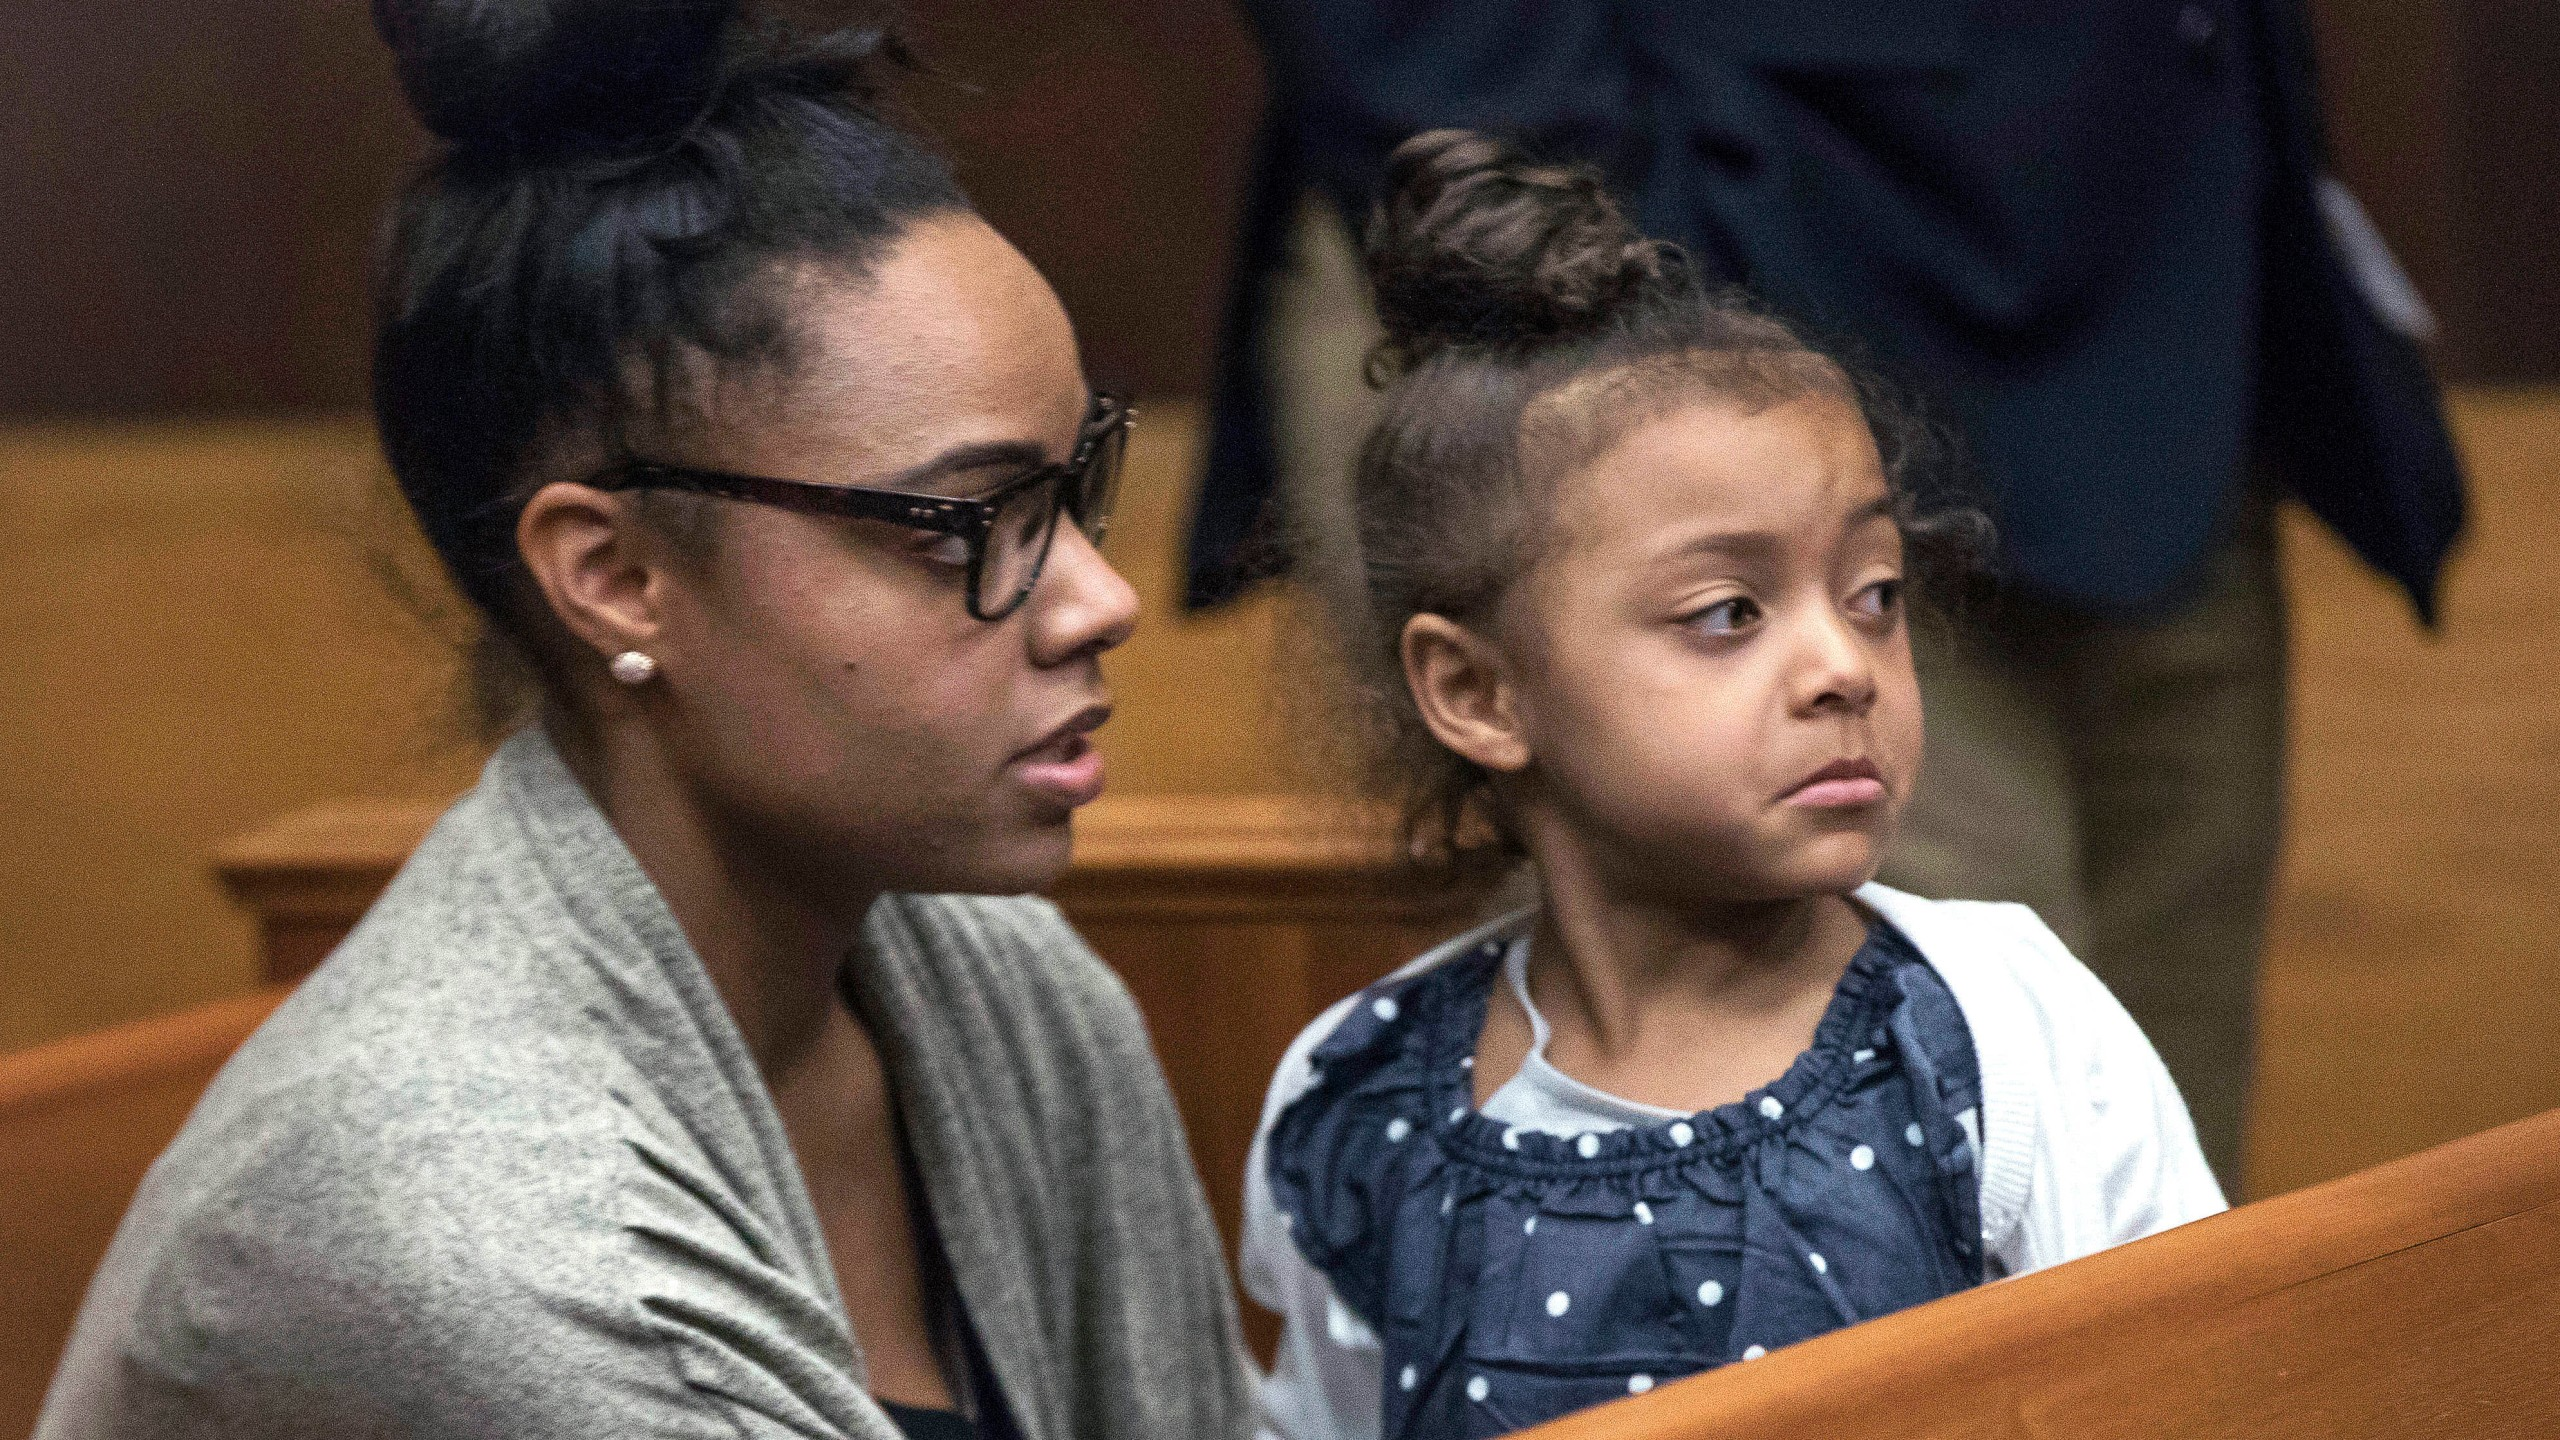 Shayanna Jernkins-Hernandez, Aaron Hernandez Fiancee Photo by Keith Bedford, The Boston Globe, Pool Photo via AP Photo_327768